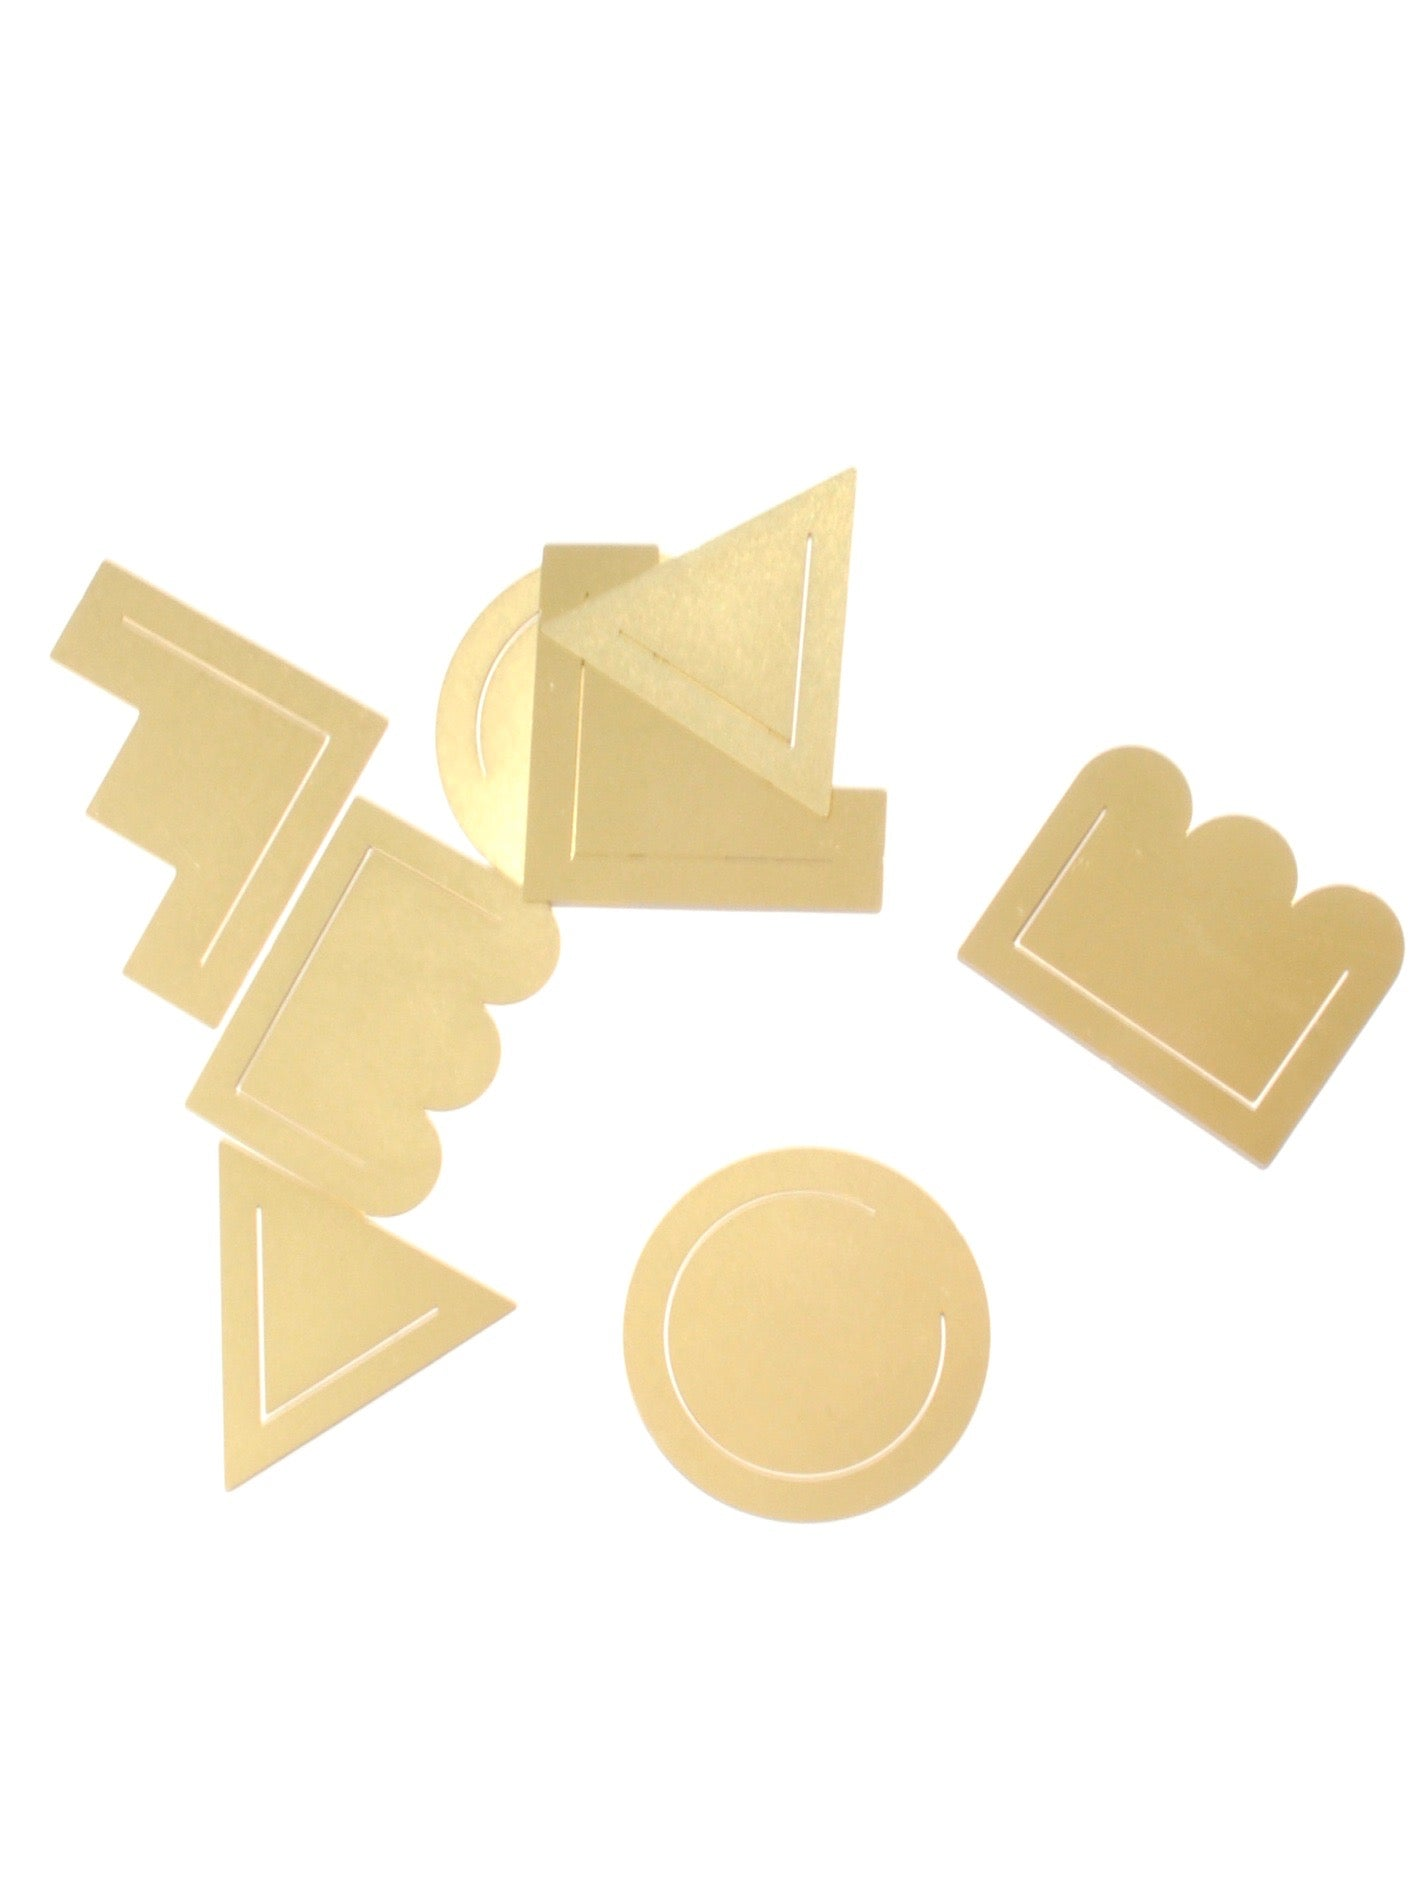 Brass Clips Set of 8 in Geometric